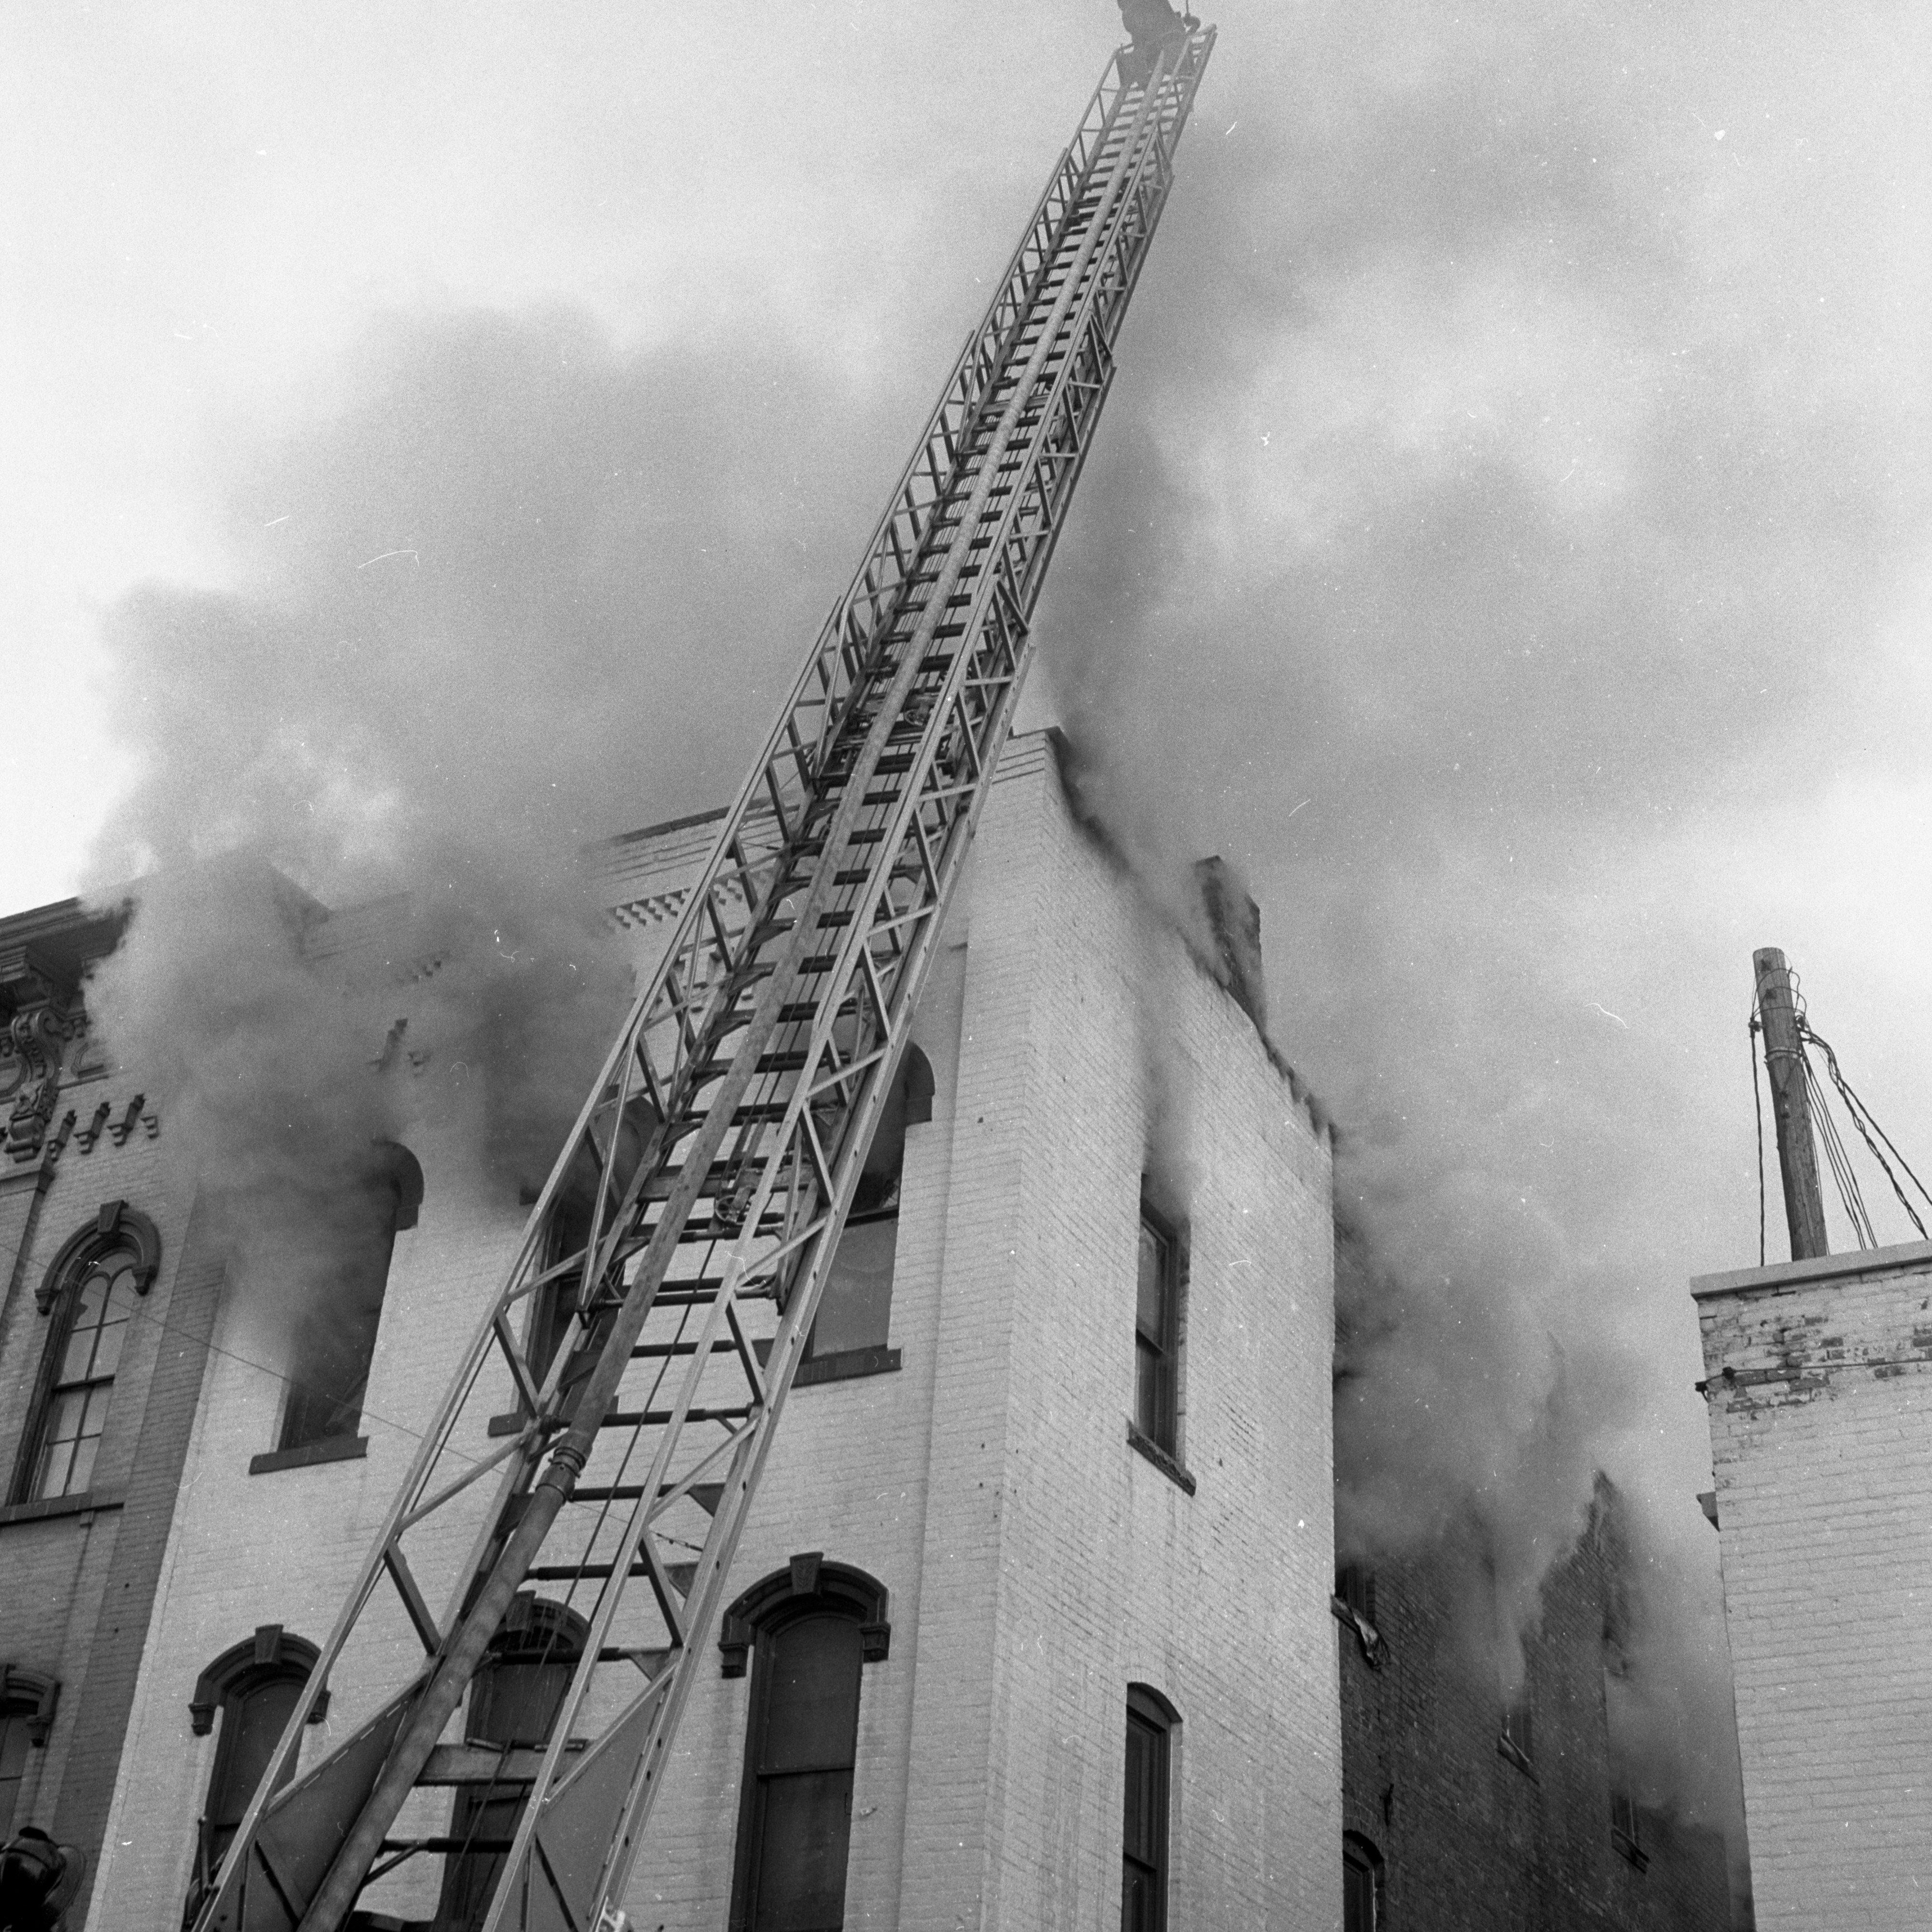 Ann Arbor Fire Department Battles Fire at Michigan Woodcraft Co. Building, November 1962 image